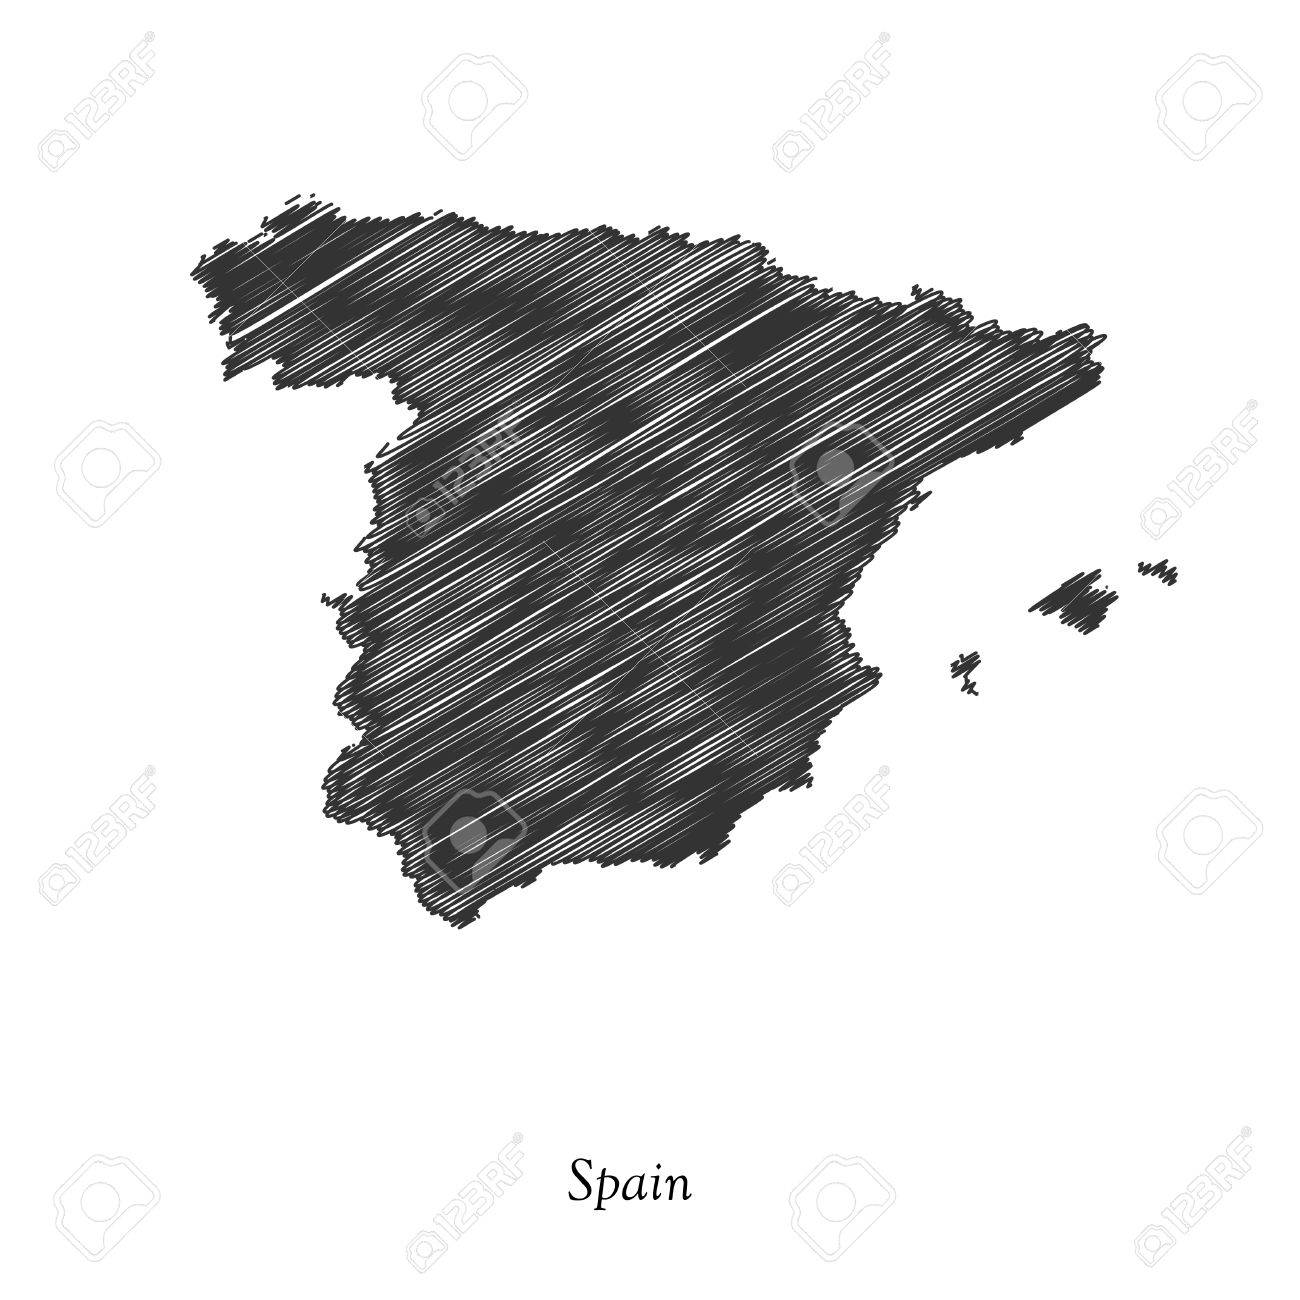 Spain map icon for your design ...